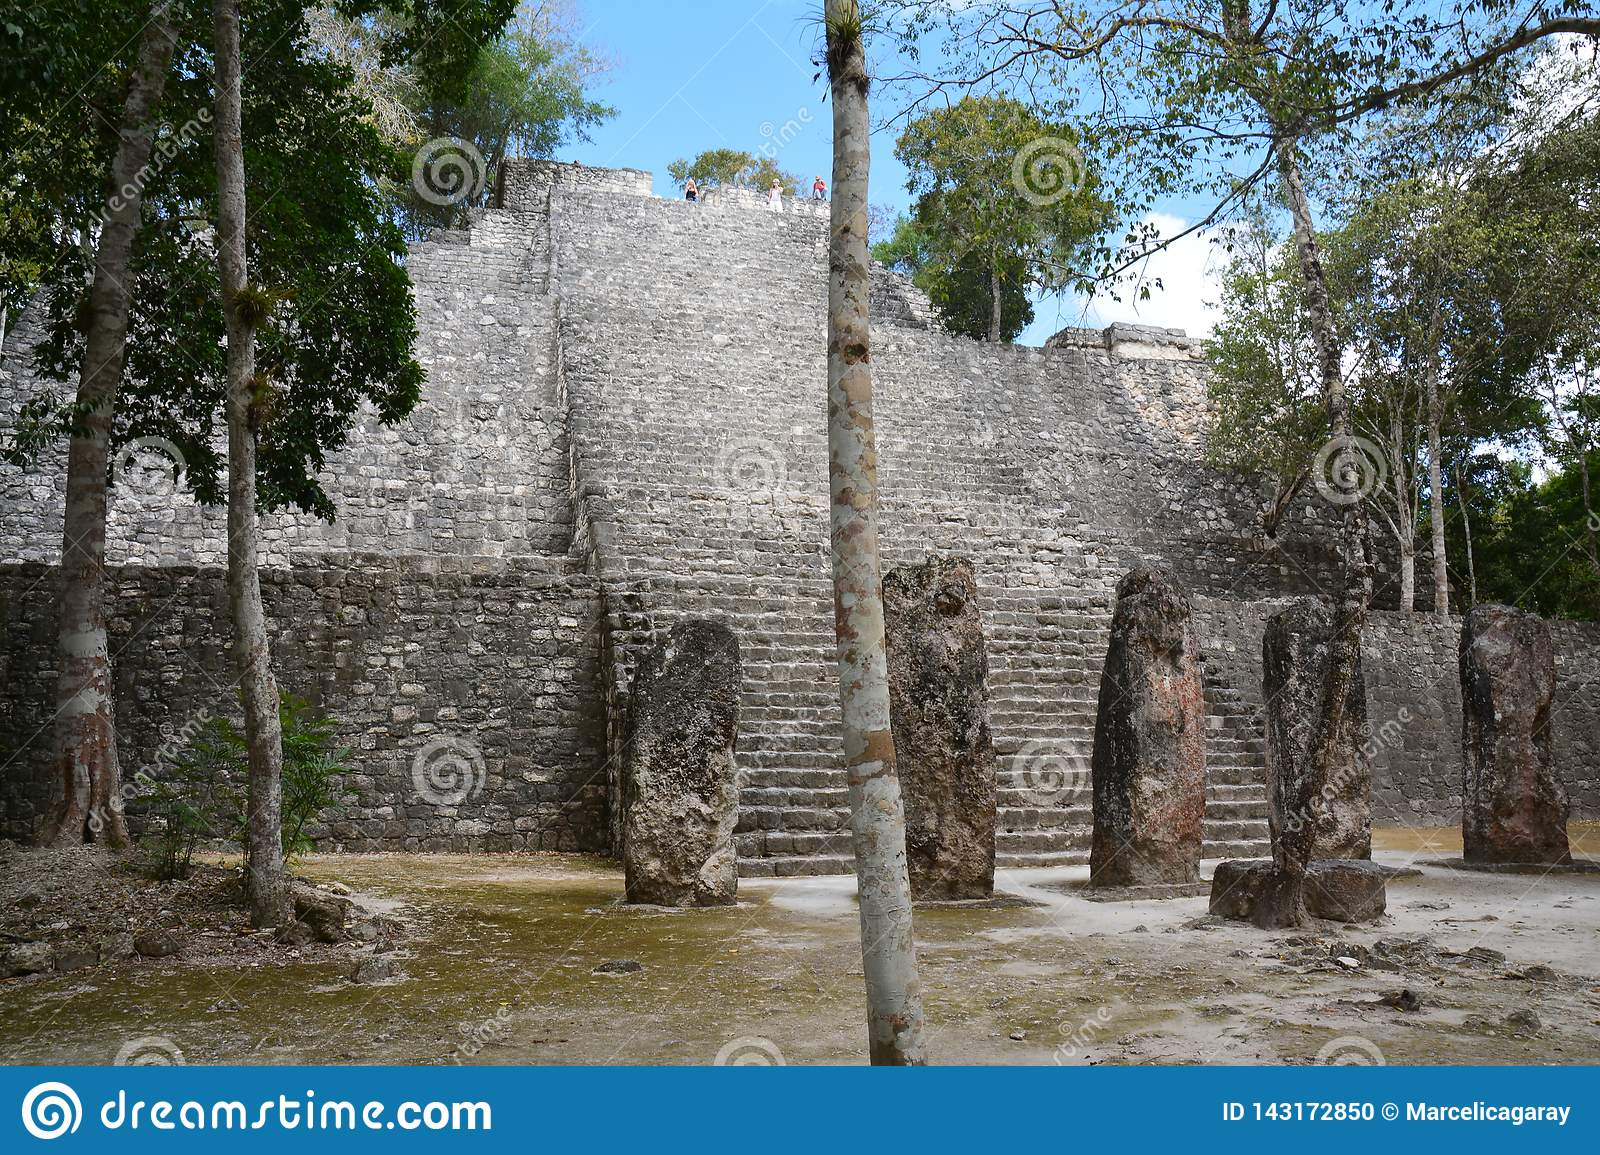 Calakmul Archaeological Site in Campeche Mexico